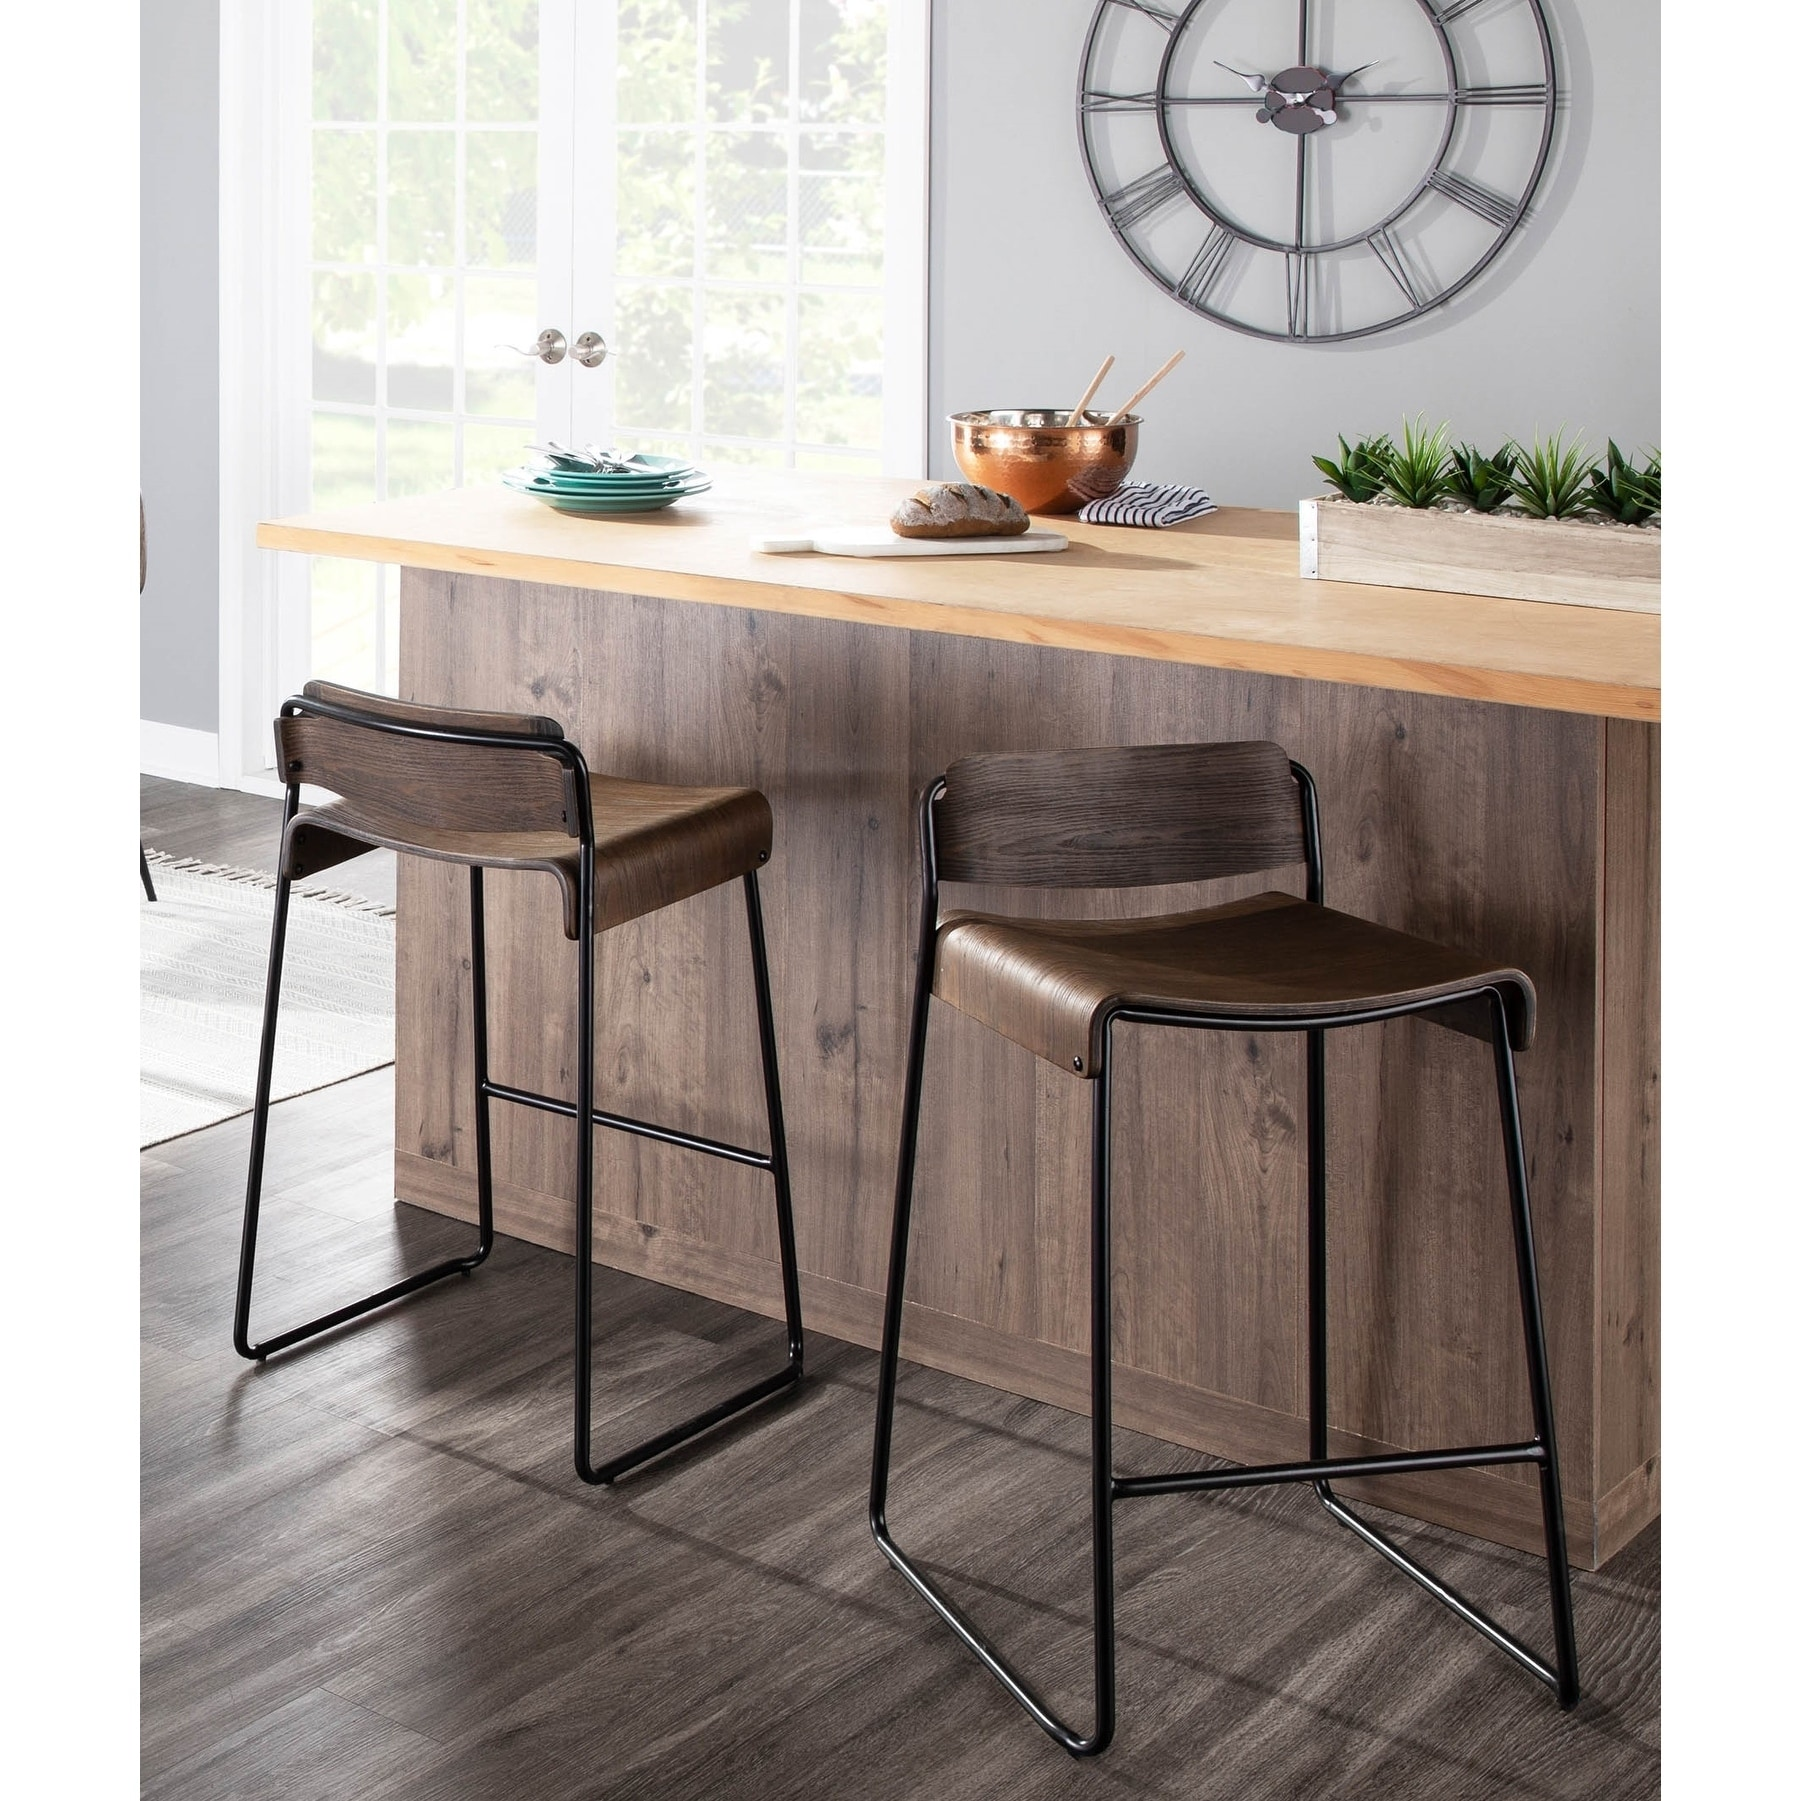 Dali Low Back Industrial Black Metal Espresso Wood Counter Stool Set Of 2 N A Overstock 29196935